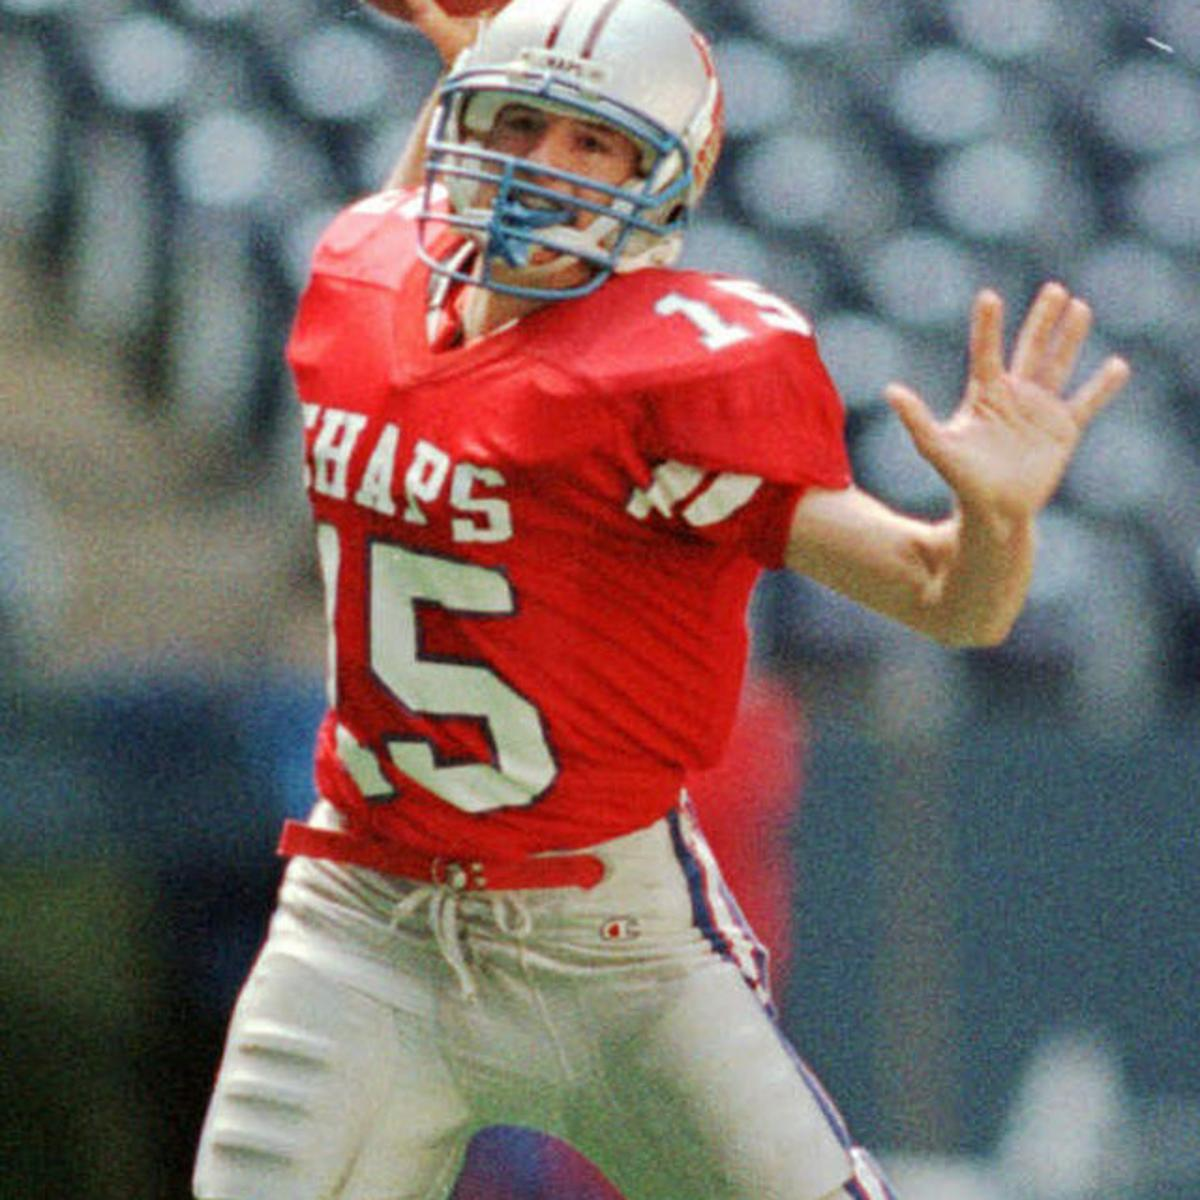 Brees Foles Share High School Roots National Journalnow Com